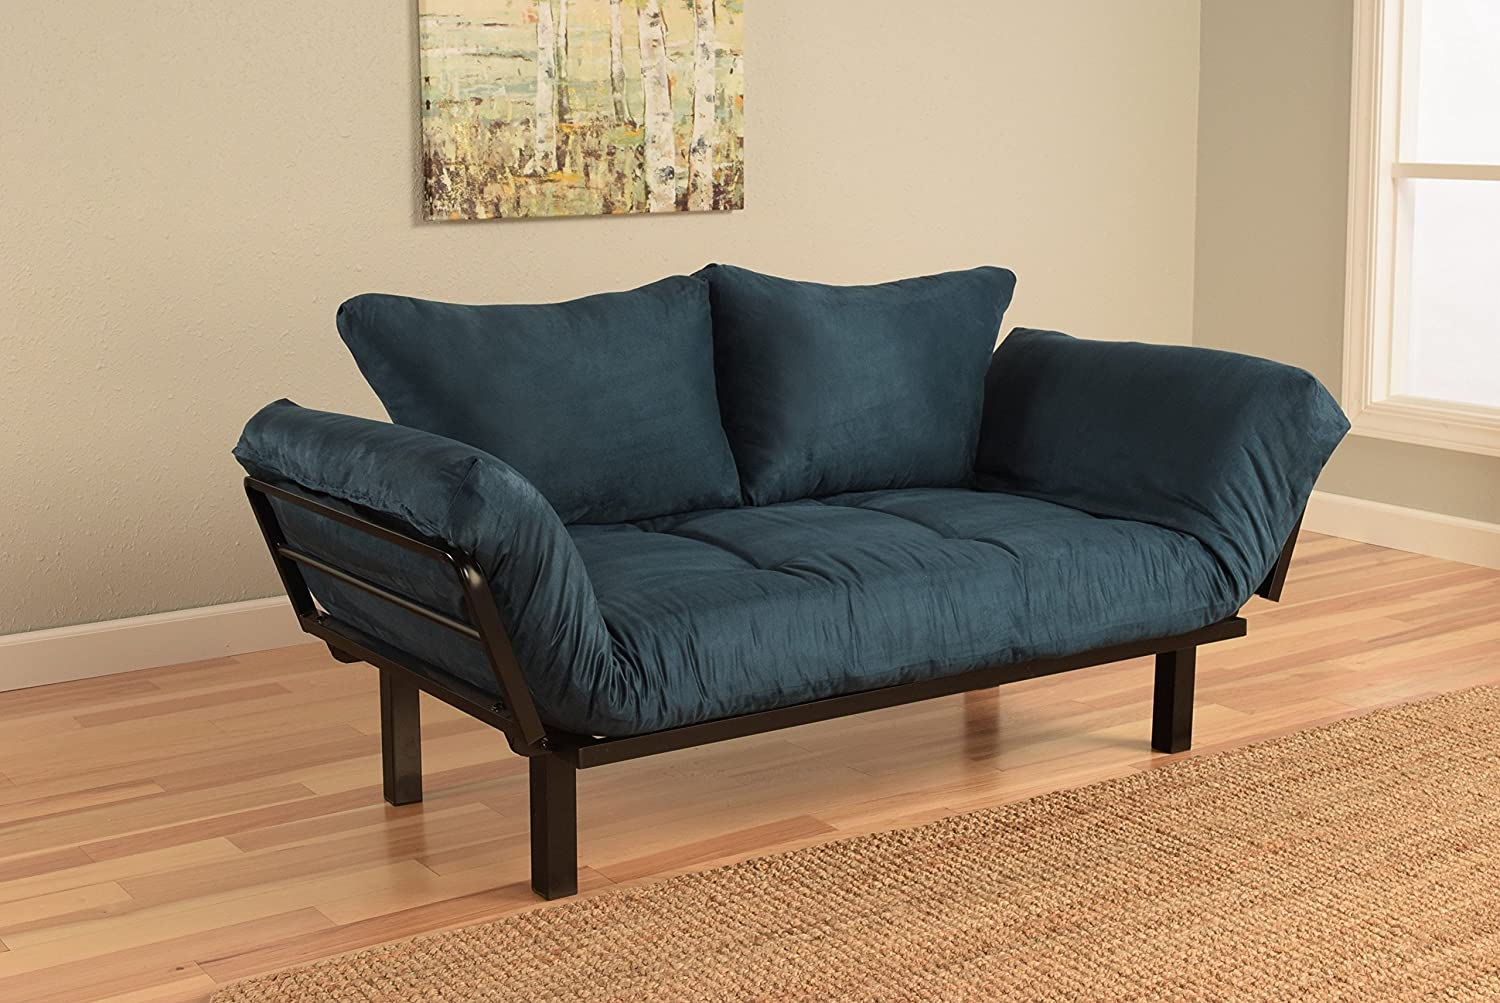 your sofas college houzz futon shop not modern ideabooks dot list by blu